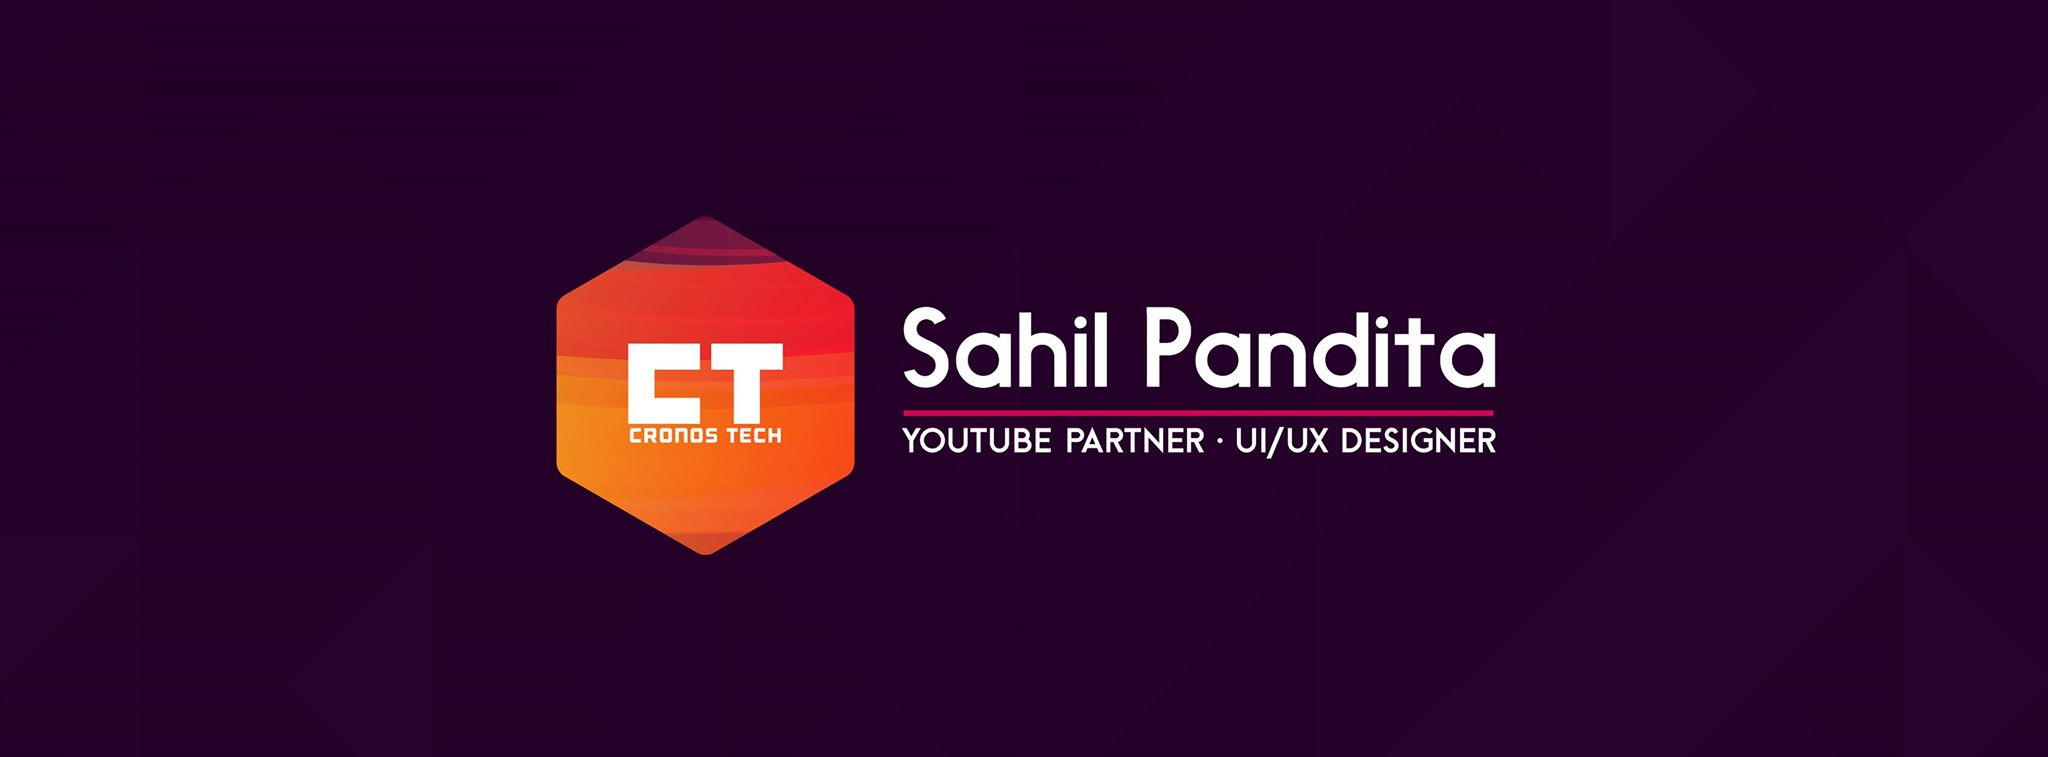 Interview with Tech Vlogger Sahil Pandita from Youtube Channel Cronos Tech